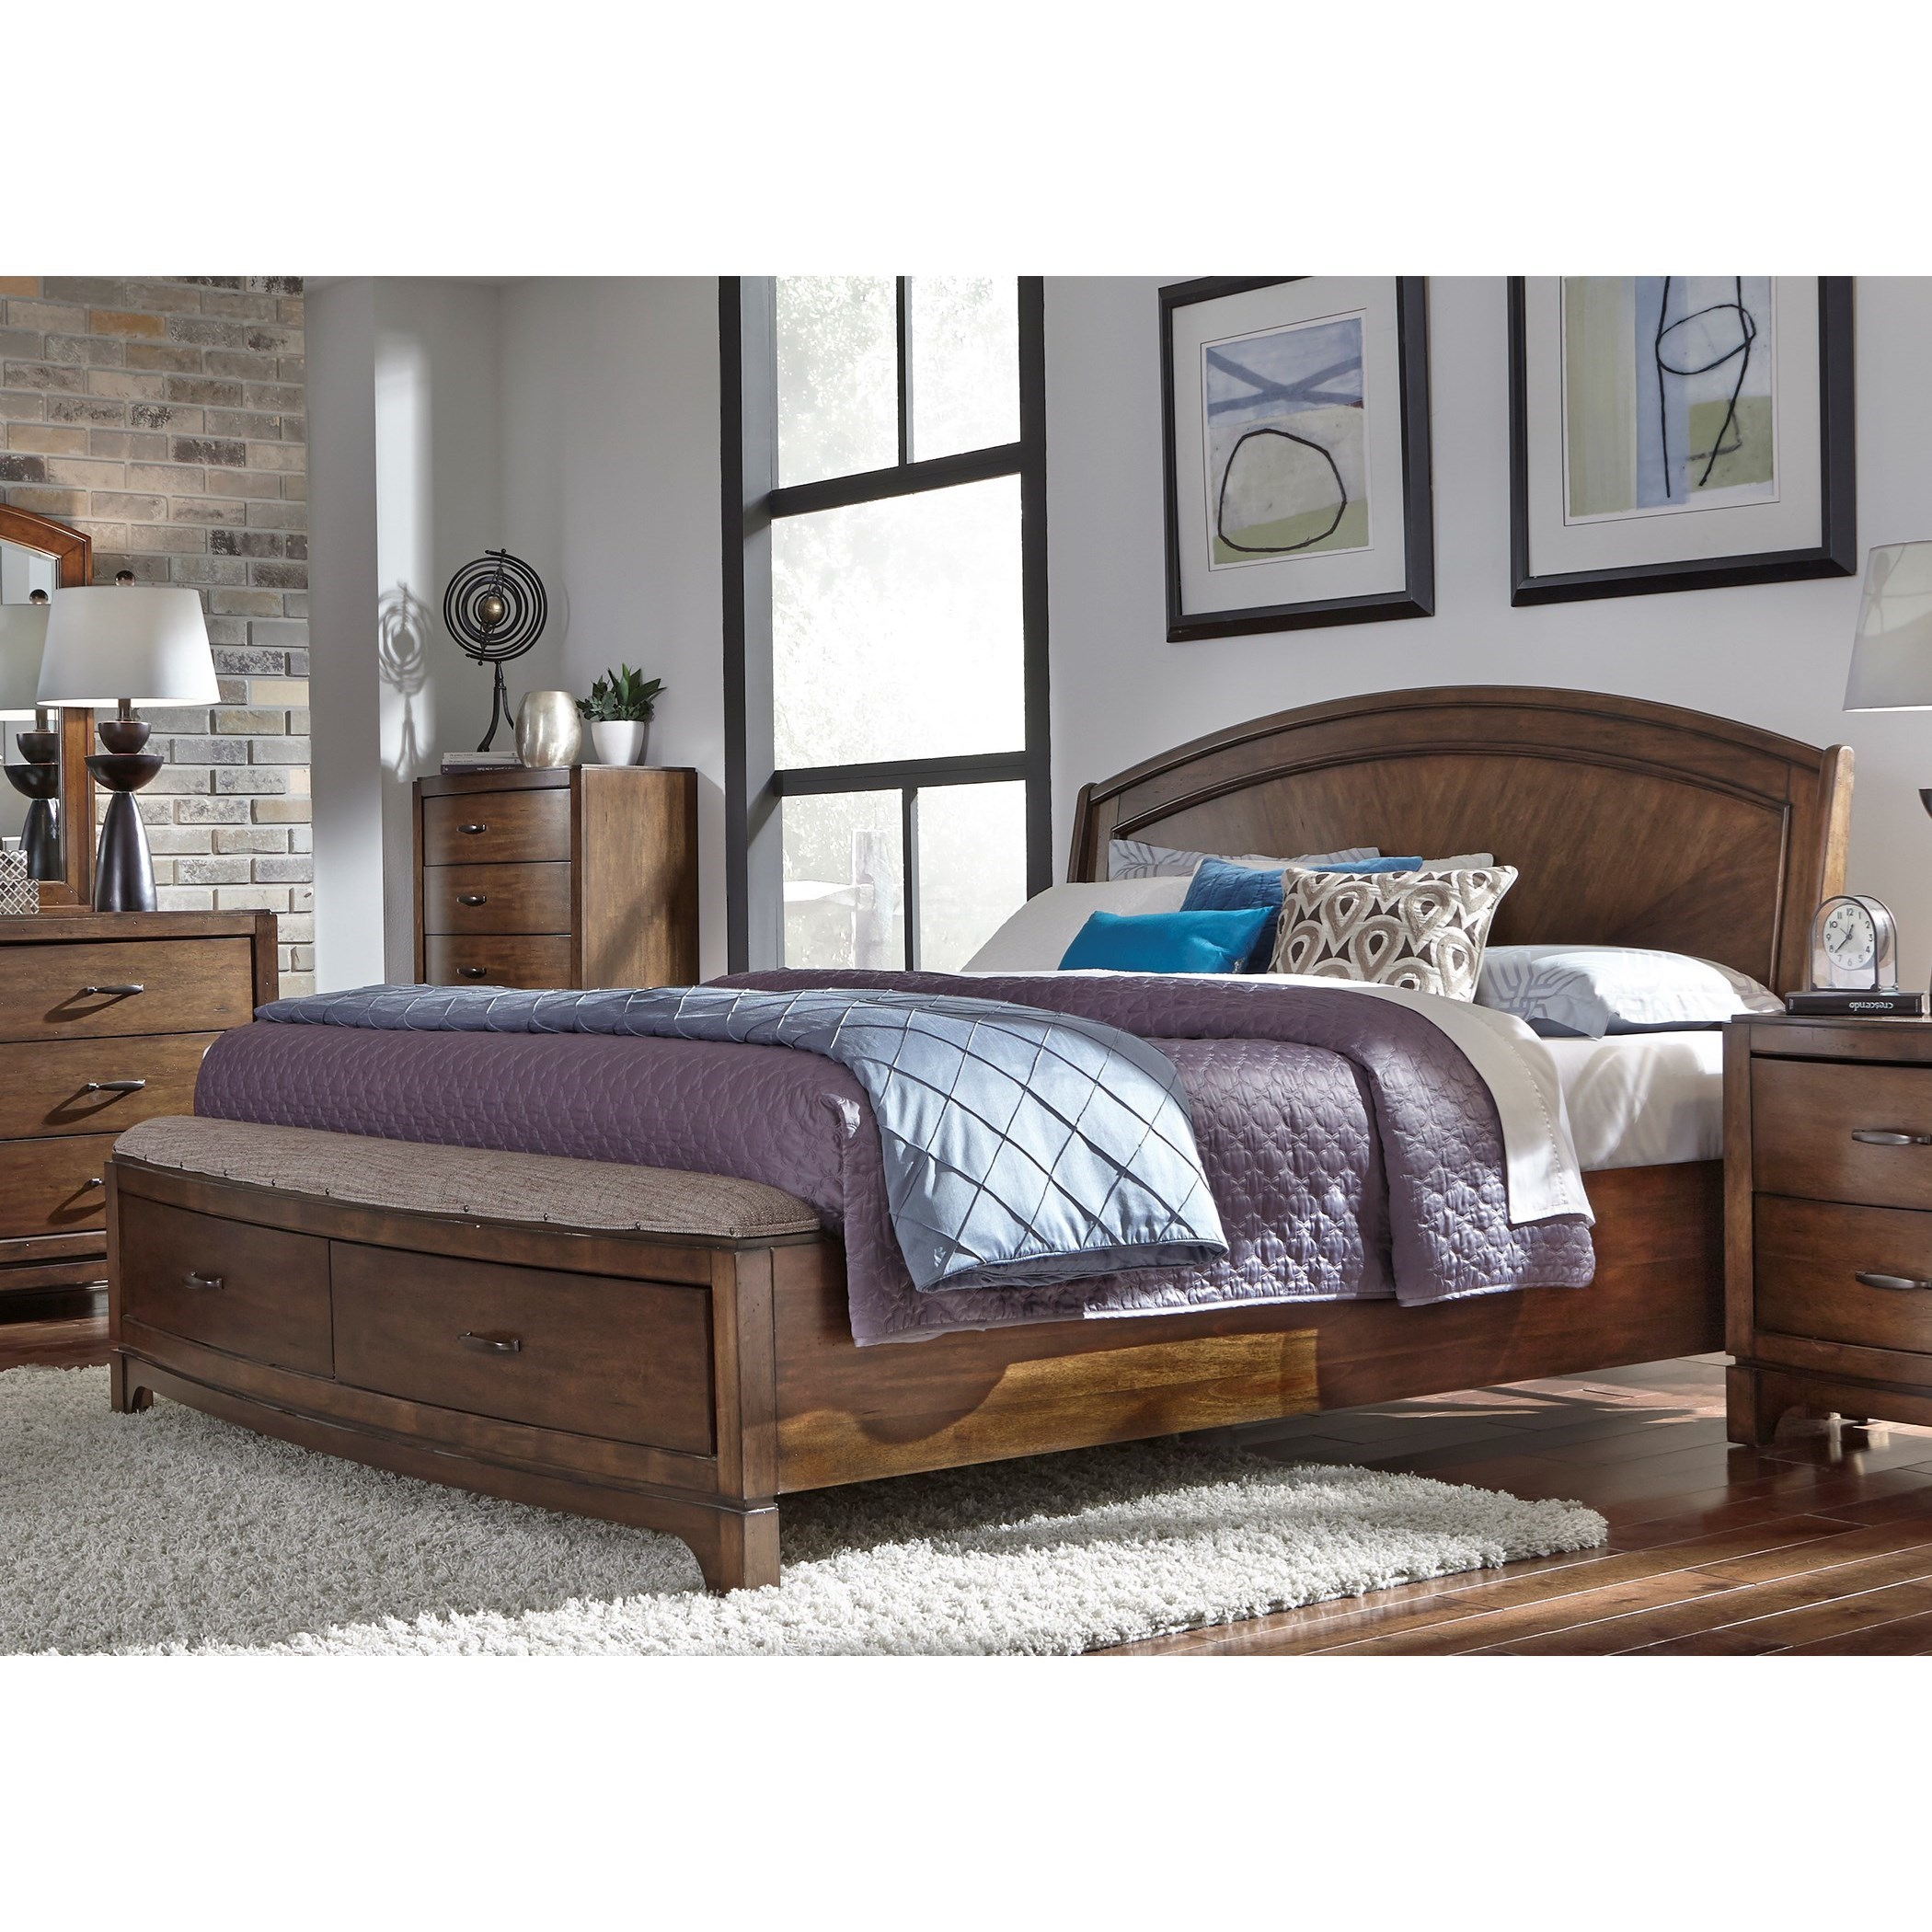 Avalon III Queen Panel Storage Bed by Libby at Walker's Furniture